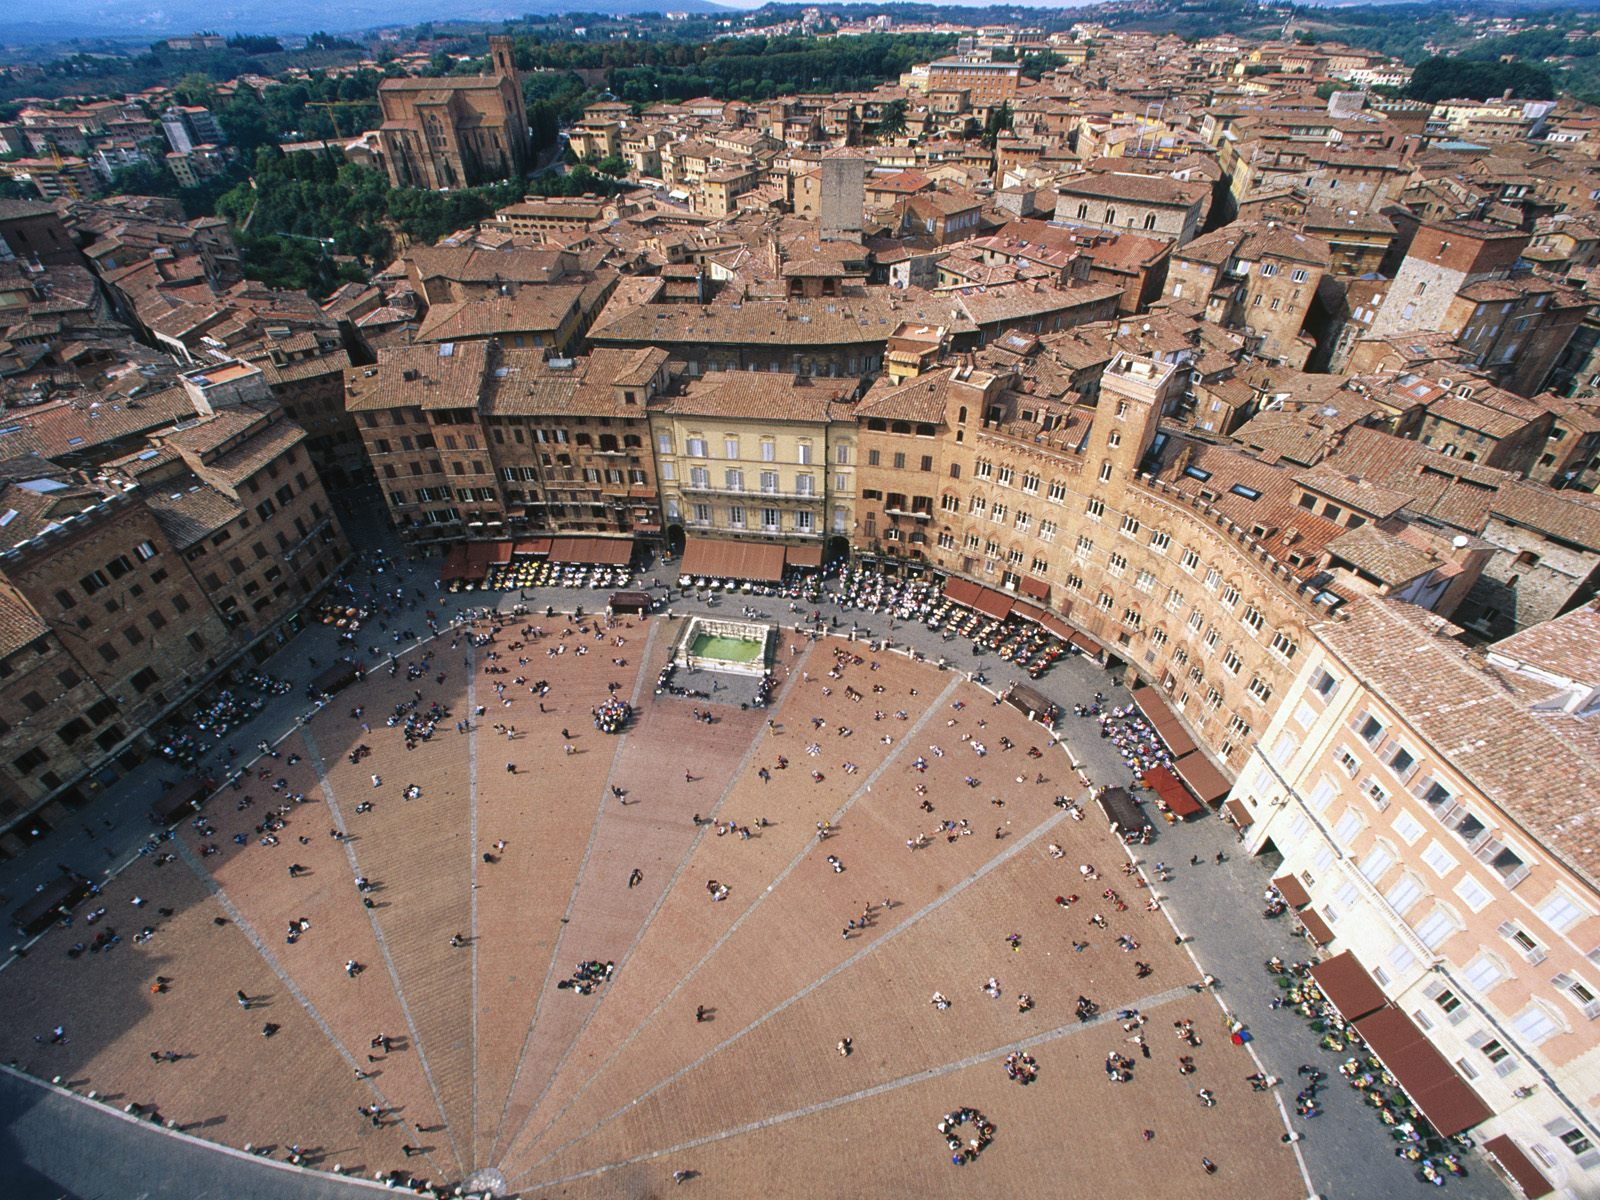 Aerial View of Piazza del Campo Italy470589399 - Aerial View of Piazza del Campo Italy - View, Town, Piazza, Italy, Campo, Aerial